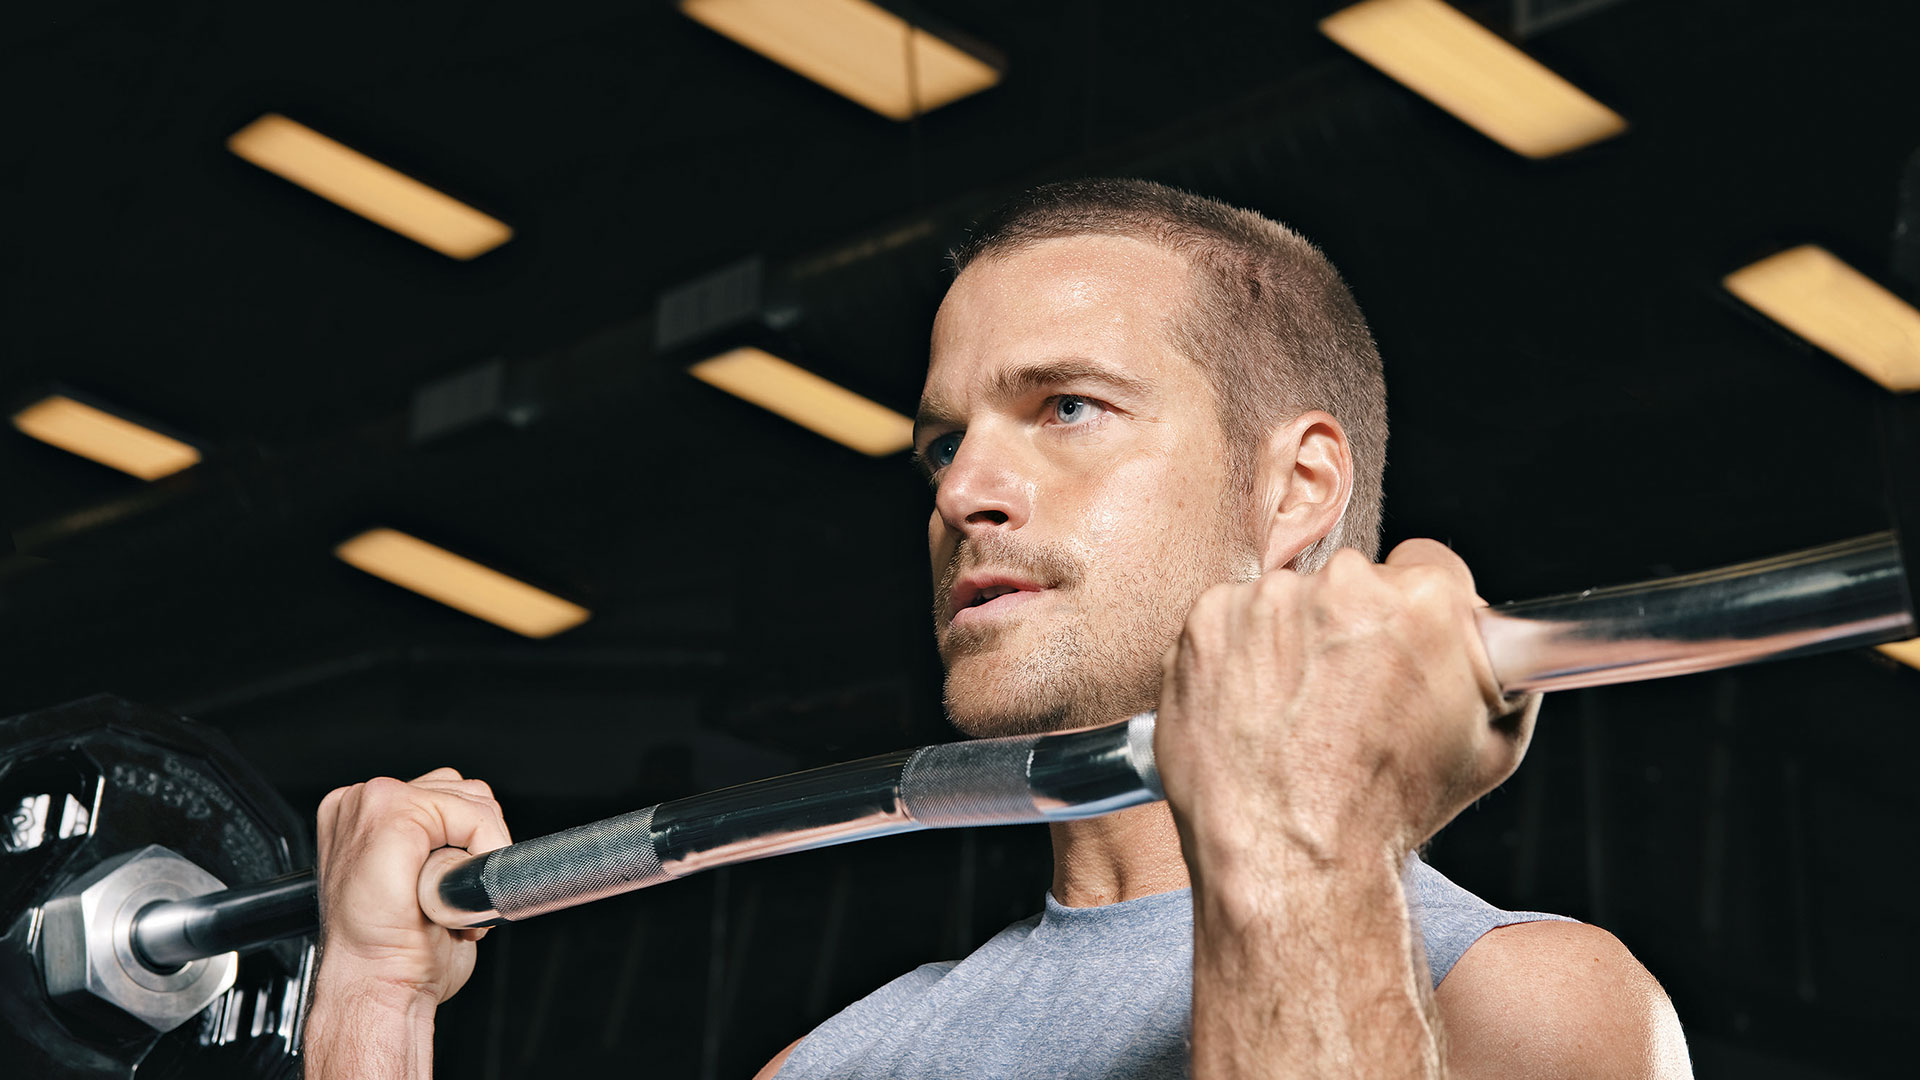 How Chris O'Donnell Trains